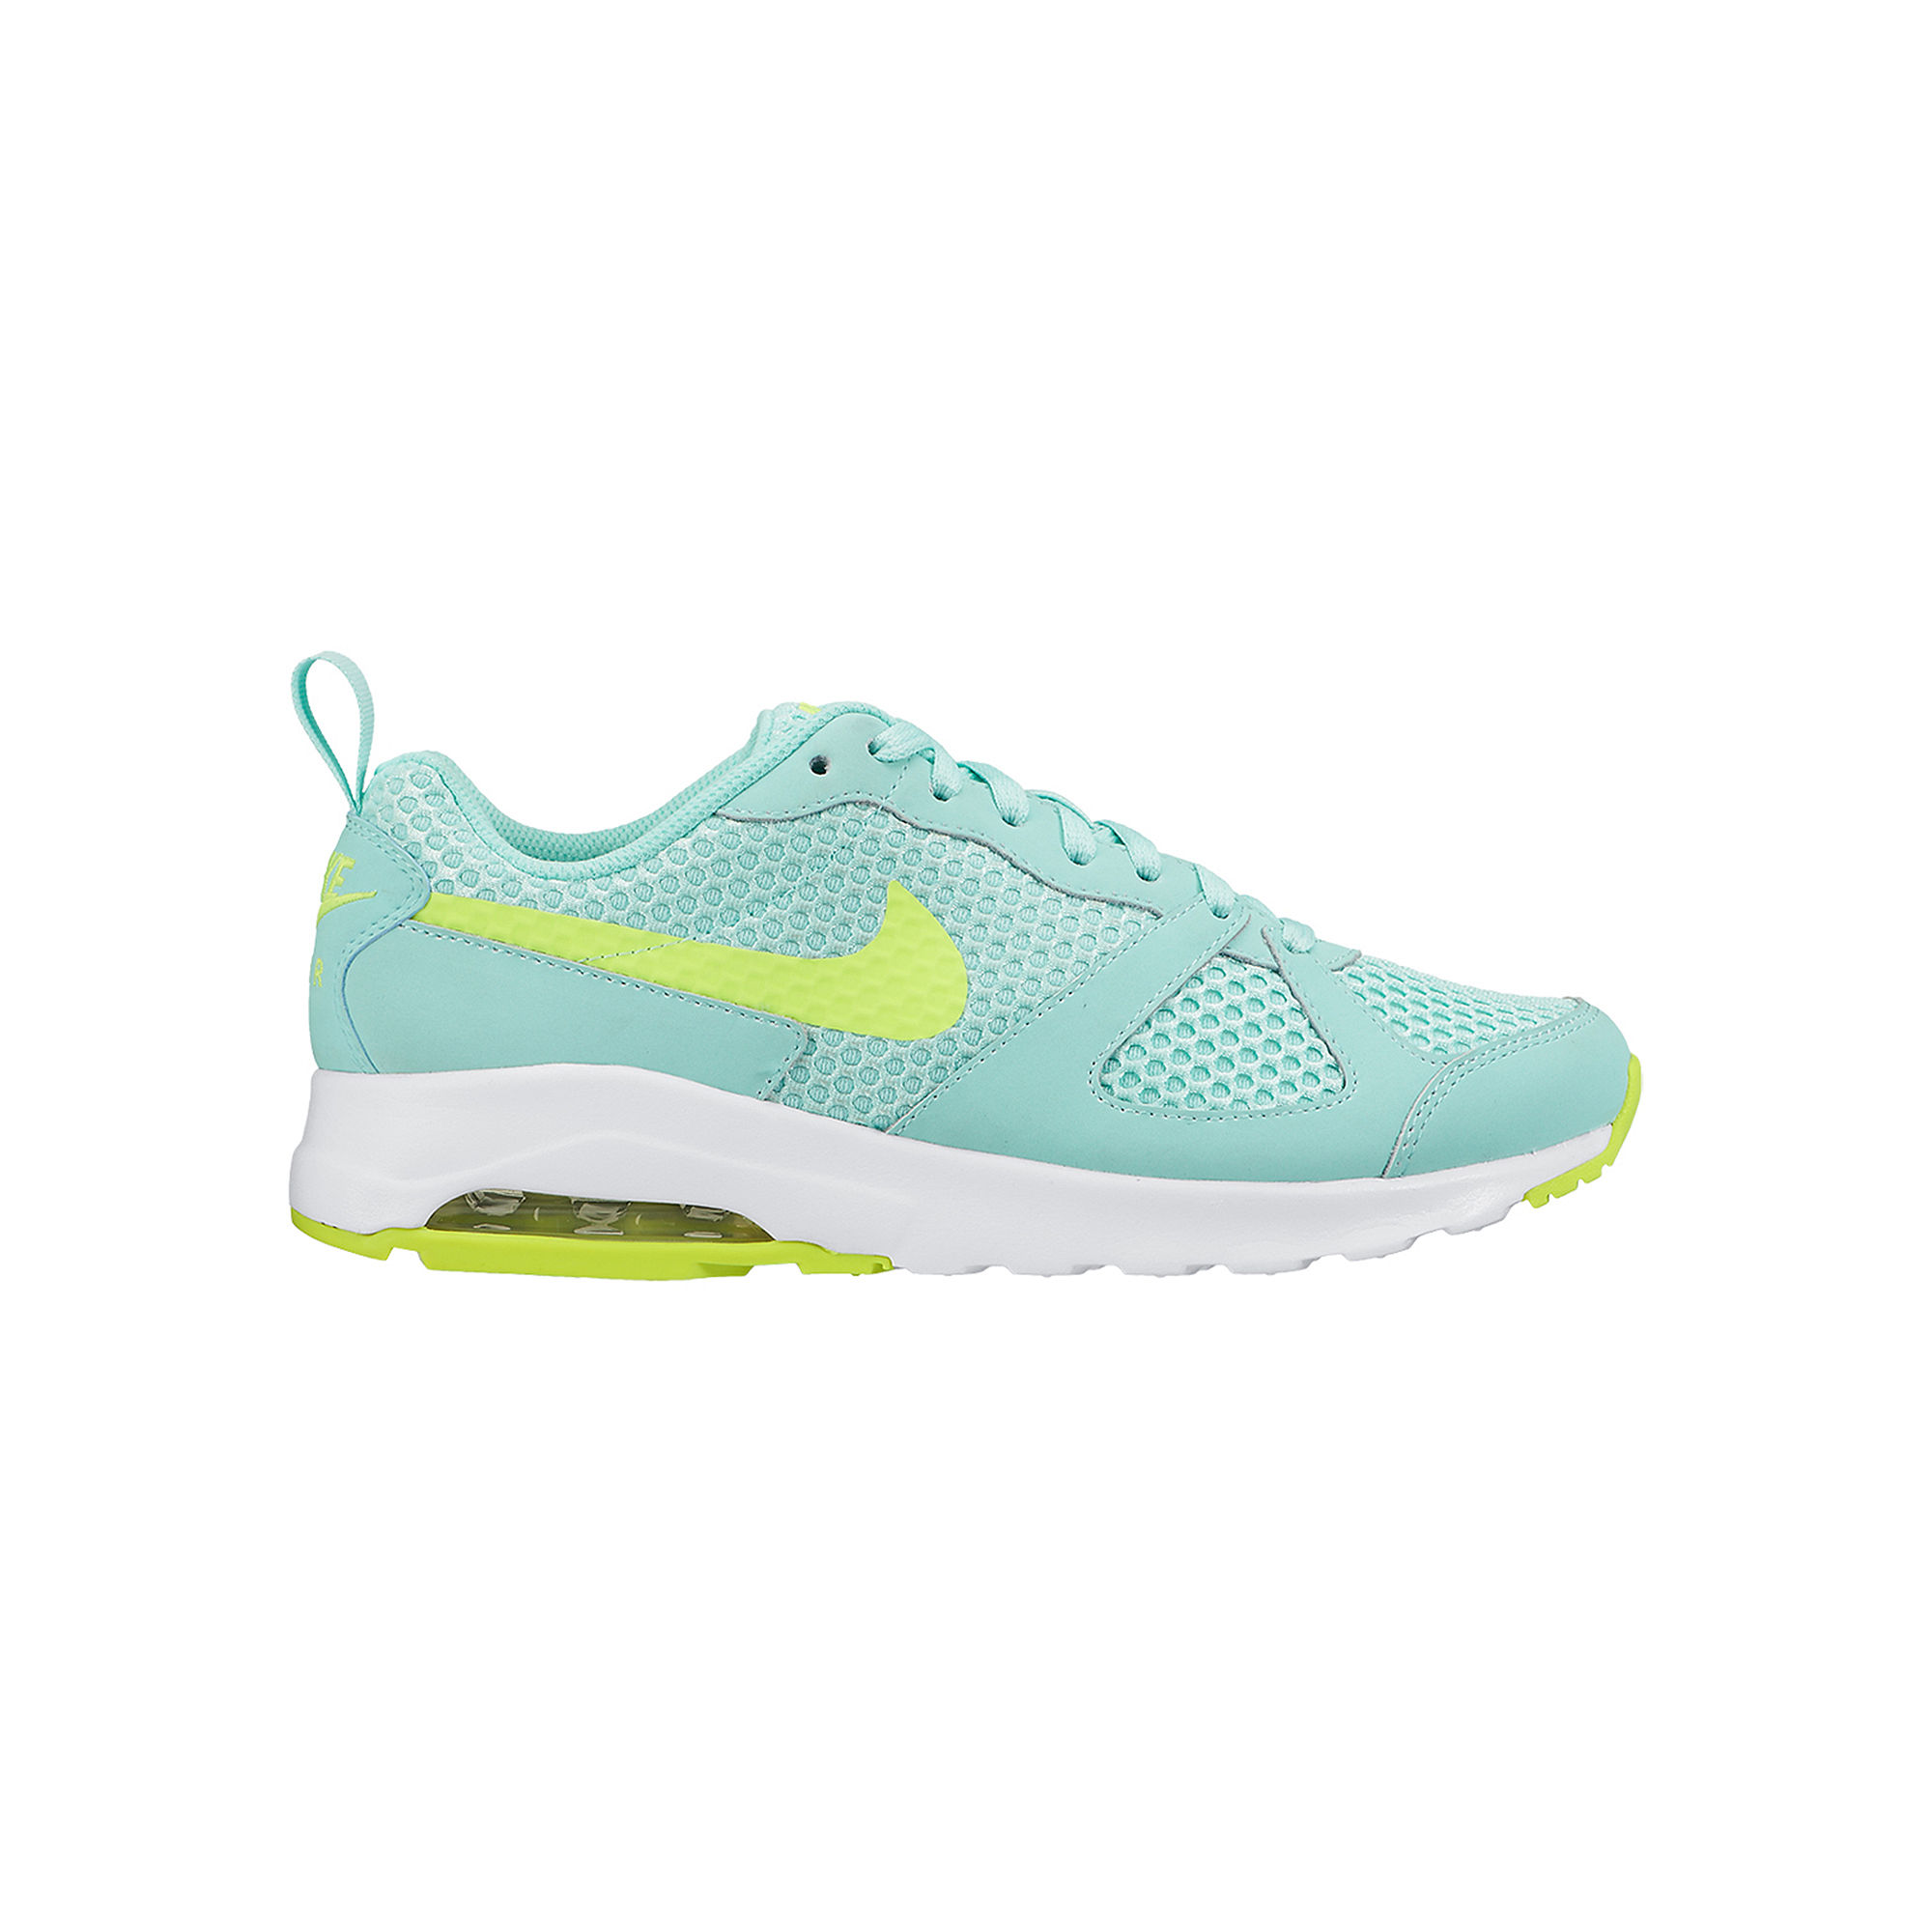 UPC 886549689087 product image for Nike Air Max Muse Womens Running Shoes |  upcitemdb.com ...